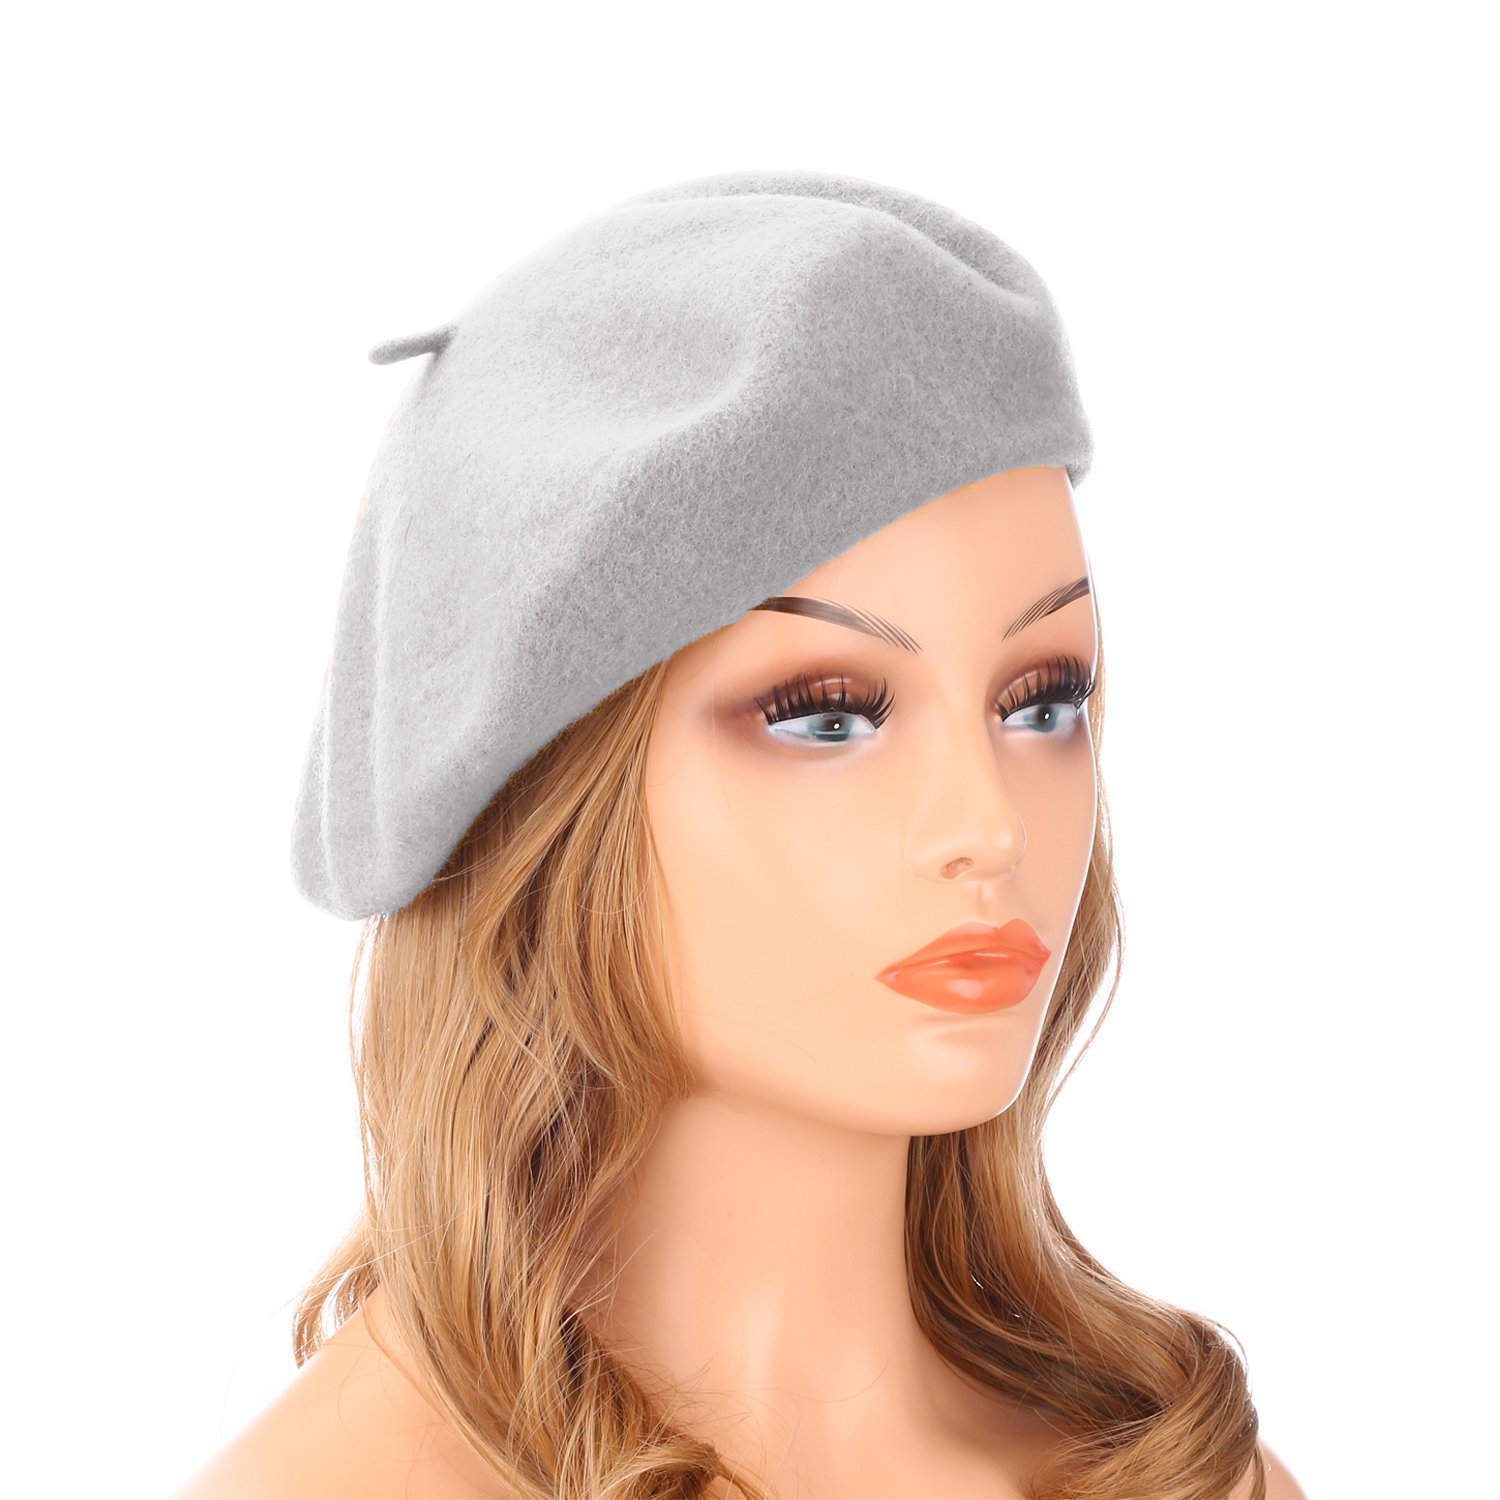 Wheebo Wool Beret Hat,Solid Color French Style Winter Warm Cap For Women Girls (Light Gray)